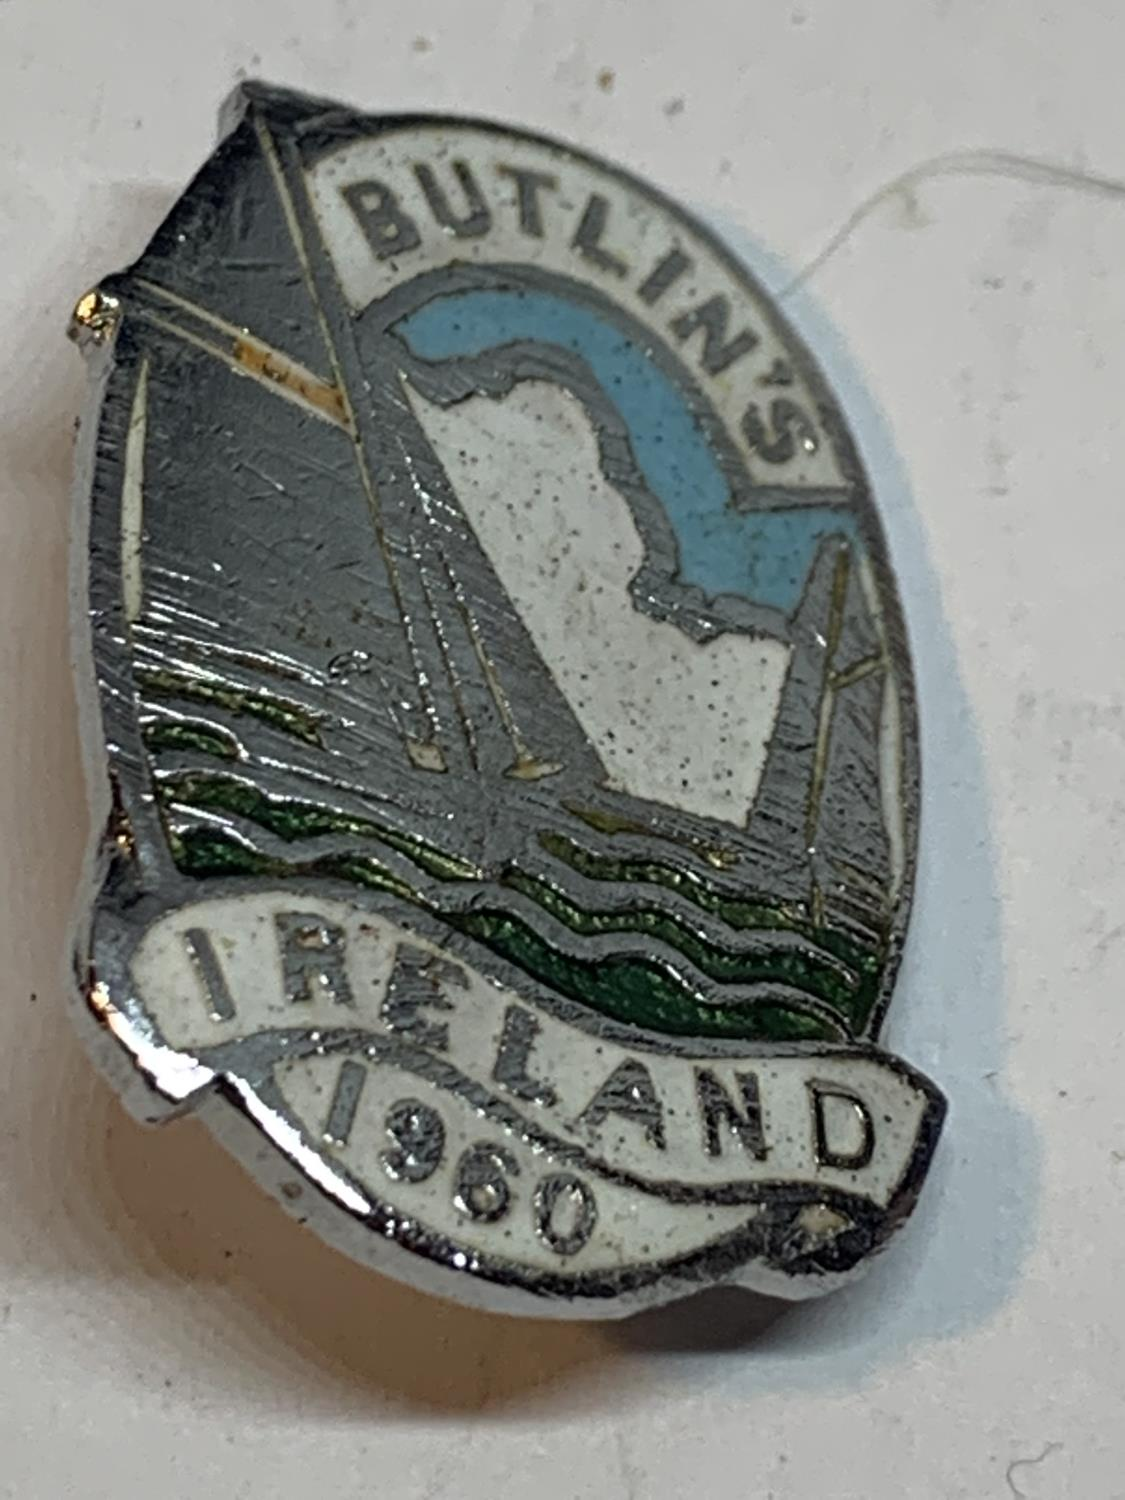 TWO RARE BUTLINS BADGES TO INCLUDE AN IRELAND 1960 AND A 1964 BEAVERS CLUB - Image 3 of 3